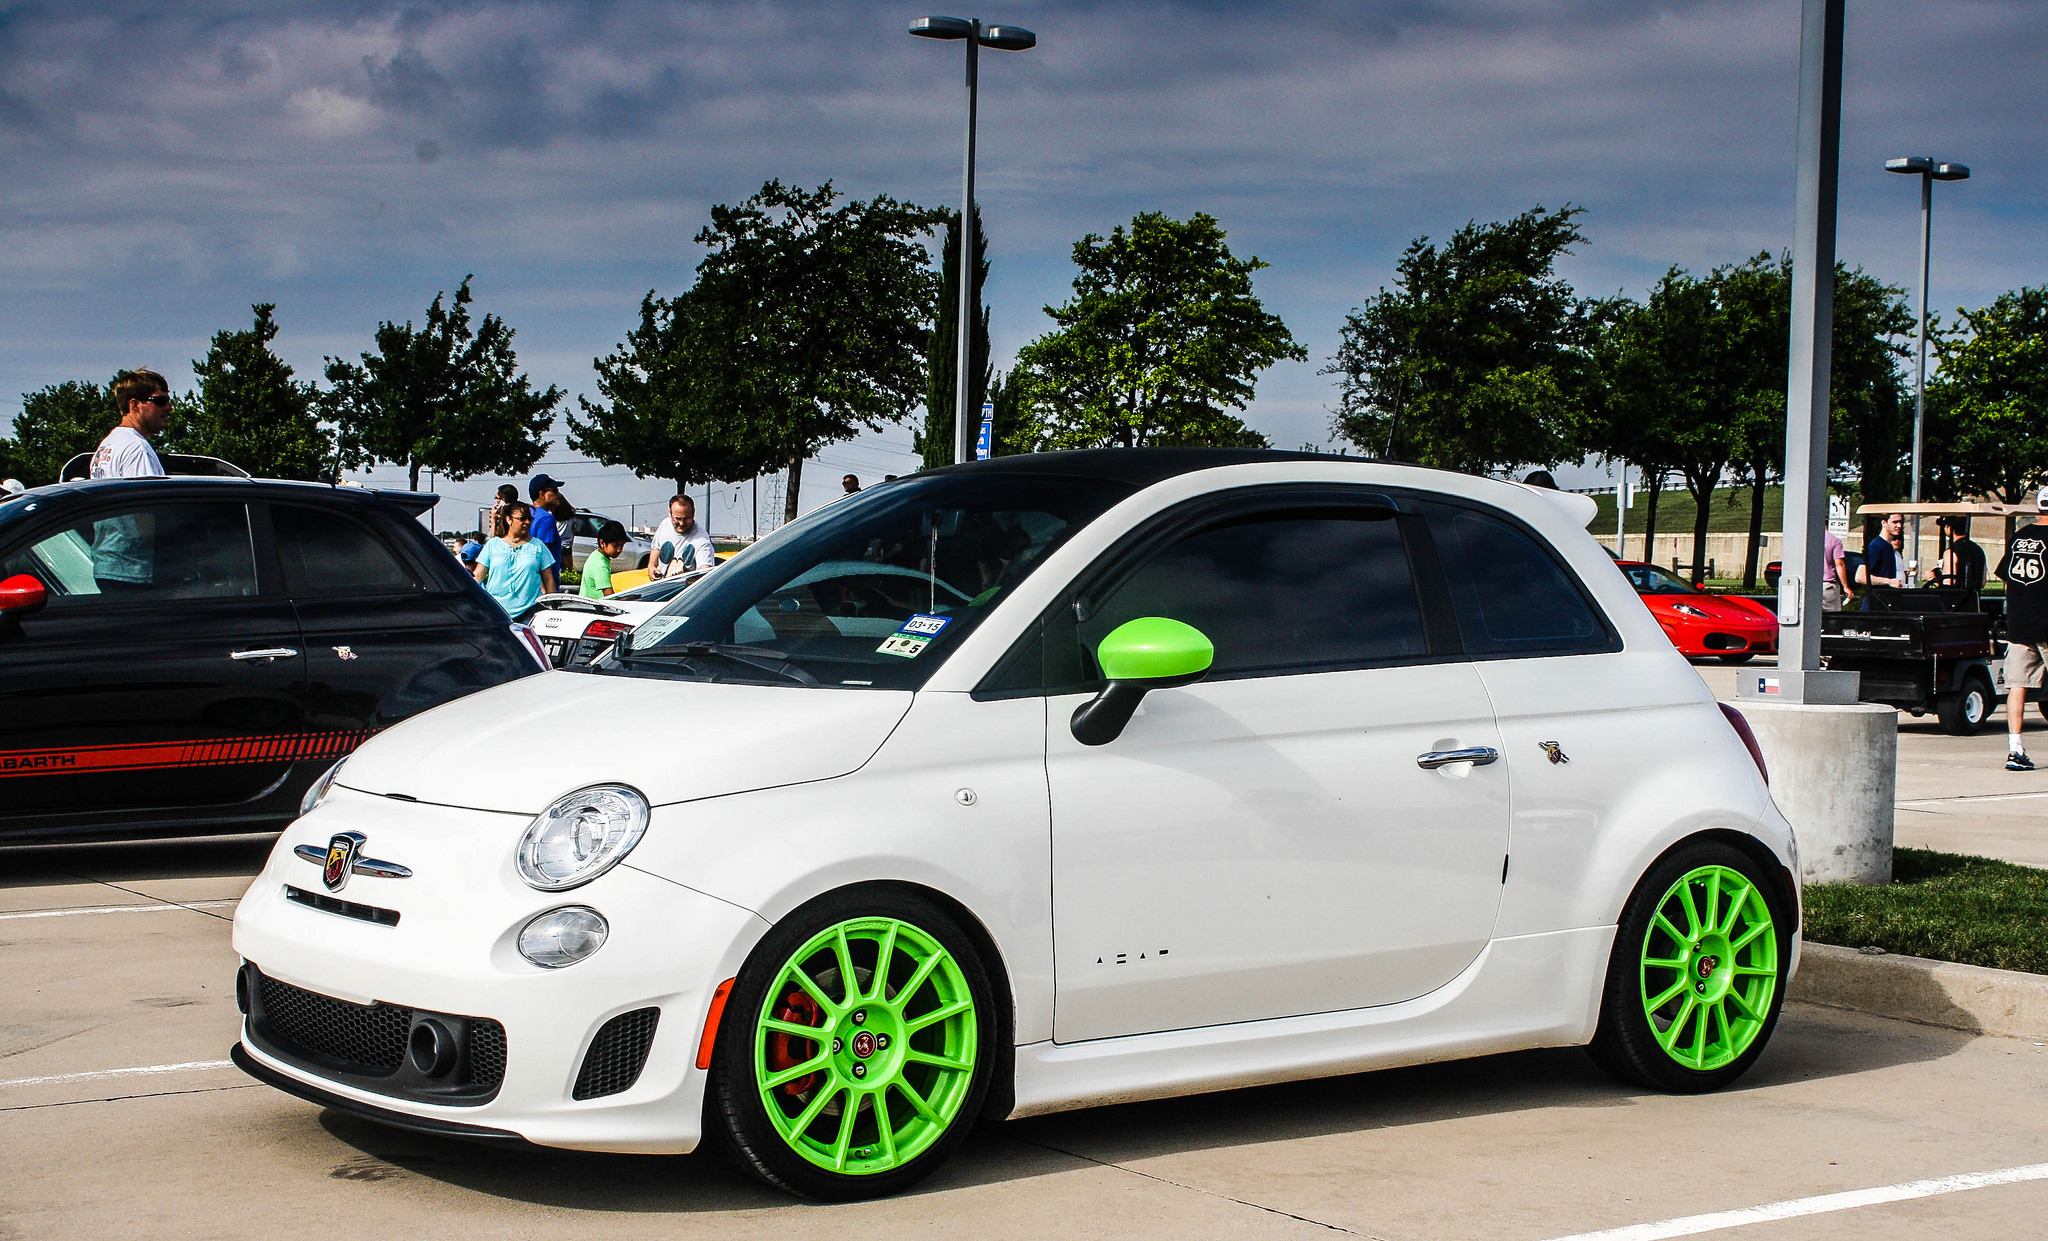 fiat 500 cars news videos images websites wiki lookingthis com. Black Bedroom Furniture Sets. Home Design Ideas